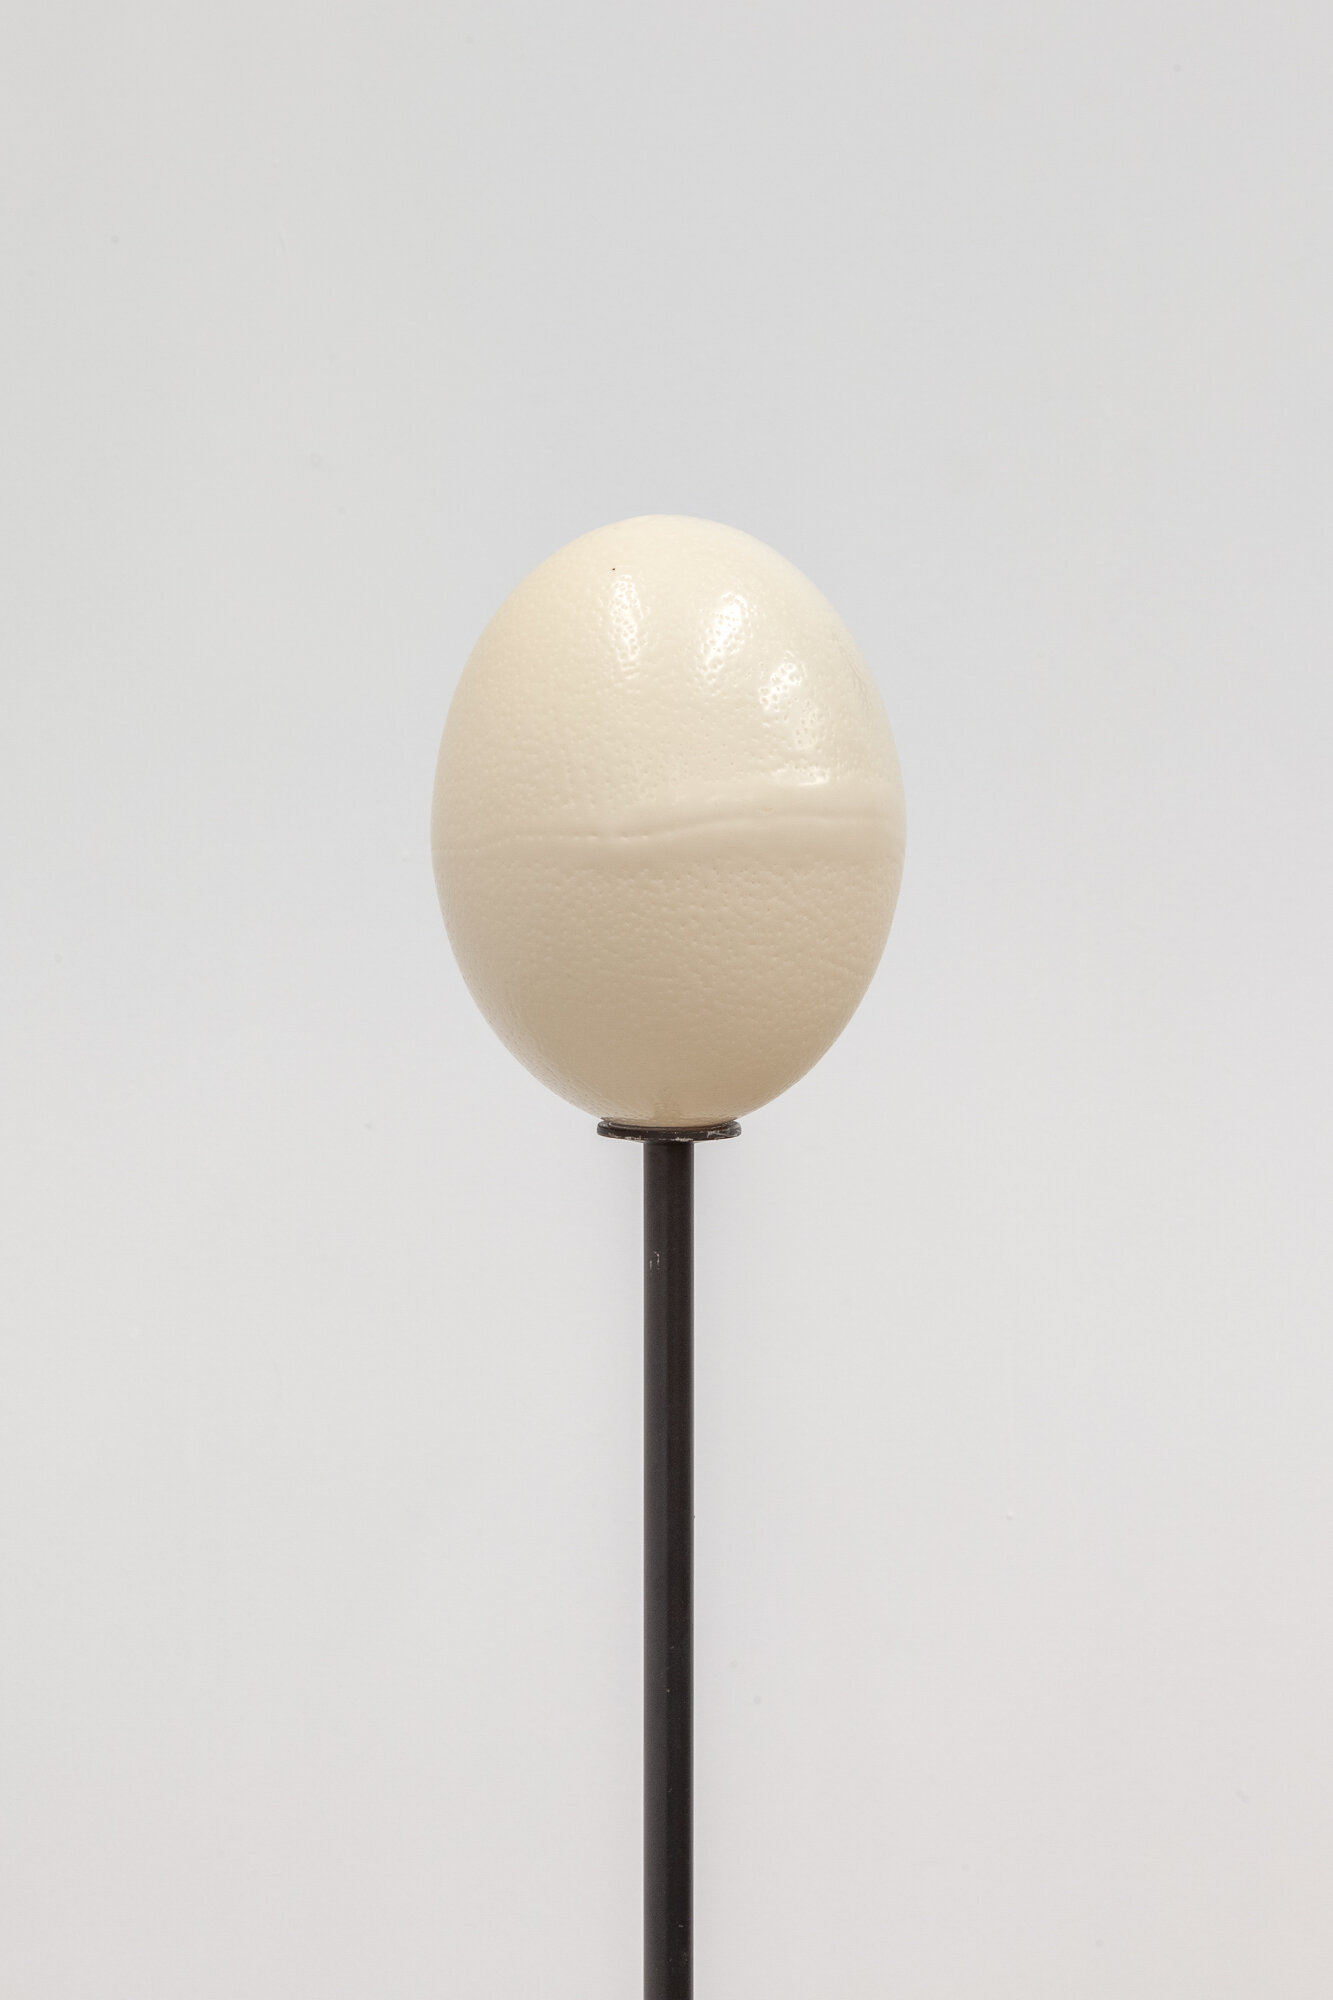 Image: Sarah Ortmeyer,  ROI , 2019. Ceramic egg with metal stand.  INFERNO CHICAGO , curated by Stephanie Cristello, Chicago Manual Style (Chicago, IL). Copyright Sarah Ortmeyer. Courtesy of Dvir, Tel Aviv / Brussels. Photographer: Robert Chase Heishman.